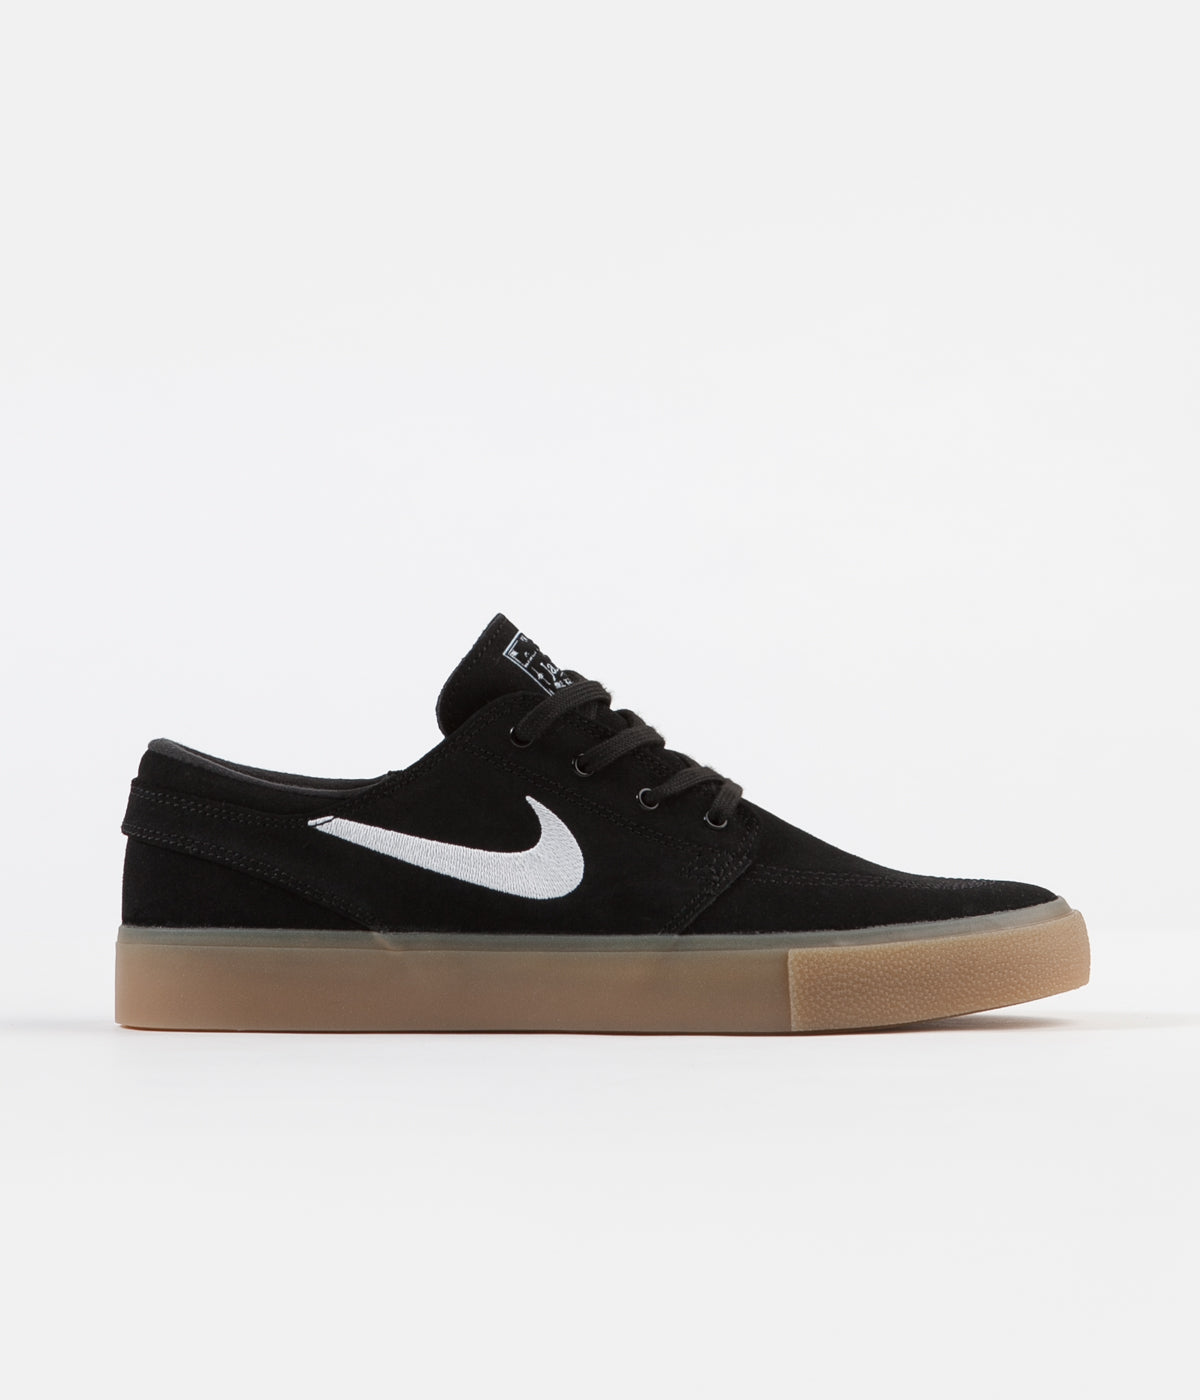 Nike SB Janoski Remastered Shoes - Black / White - Black - Gum Light Brown